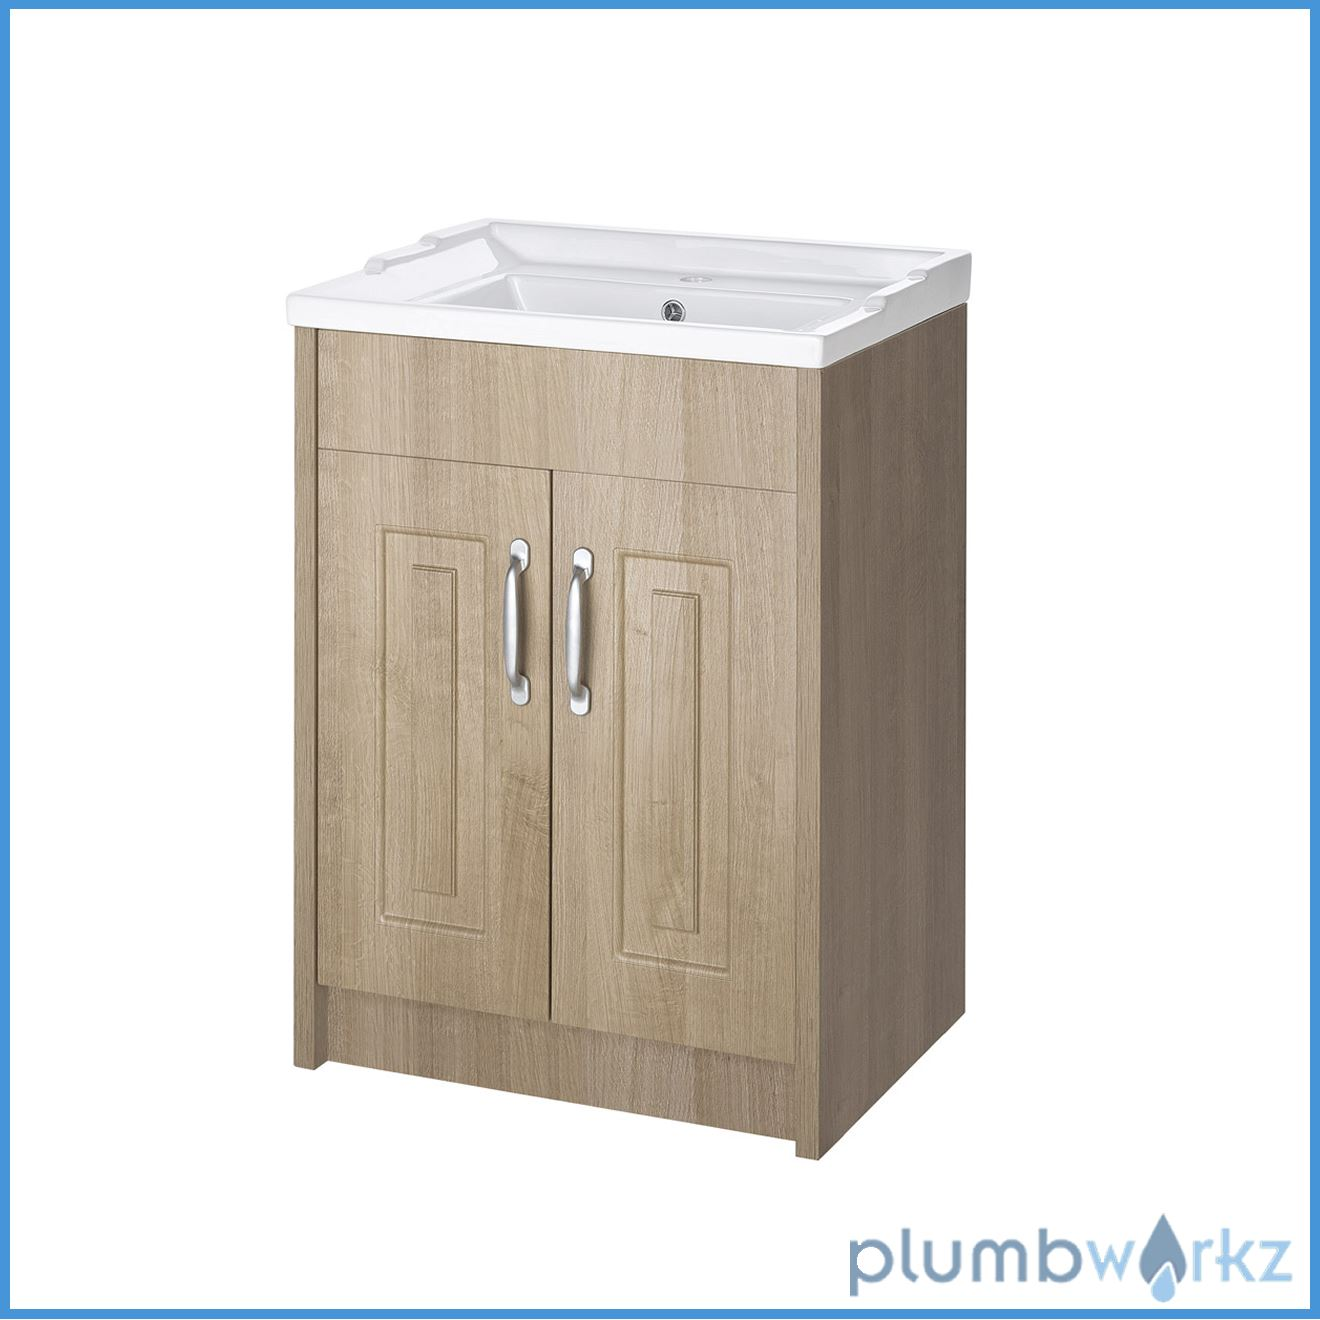 HD wallpapers wc cabinet